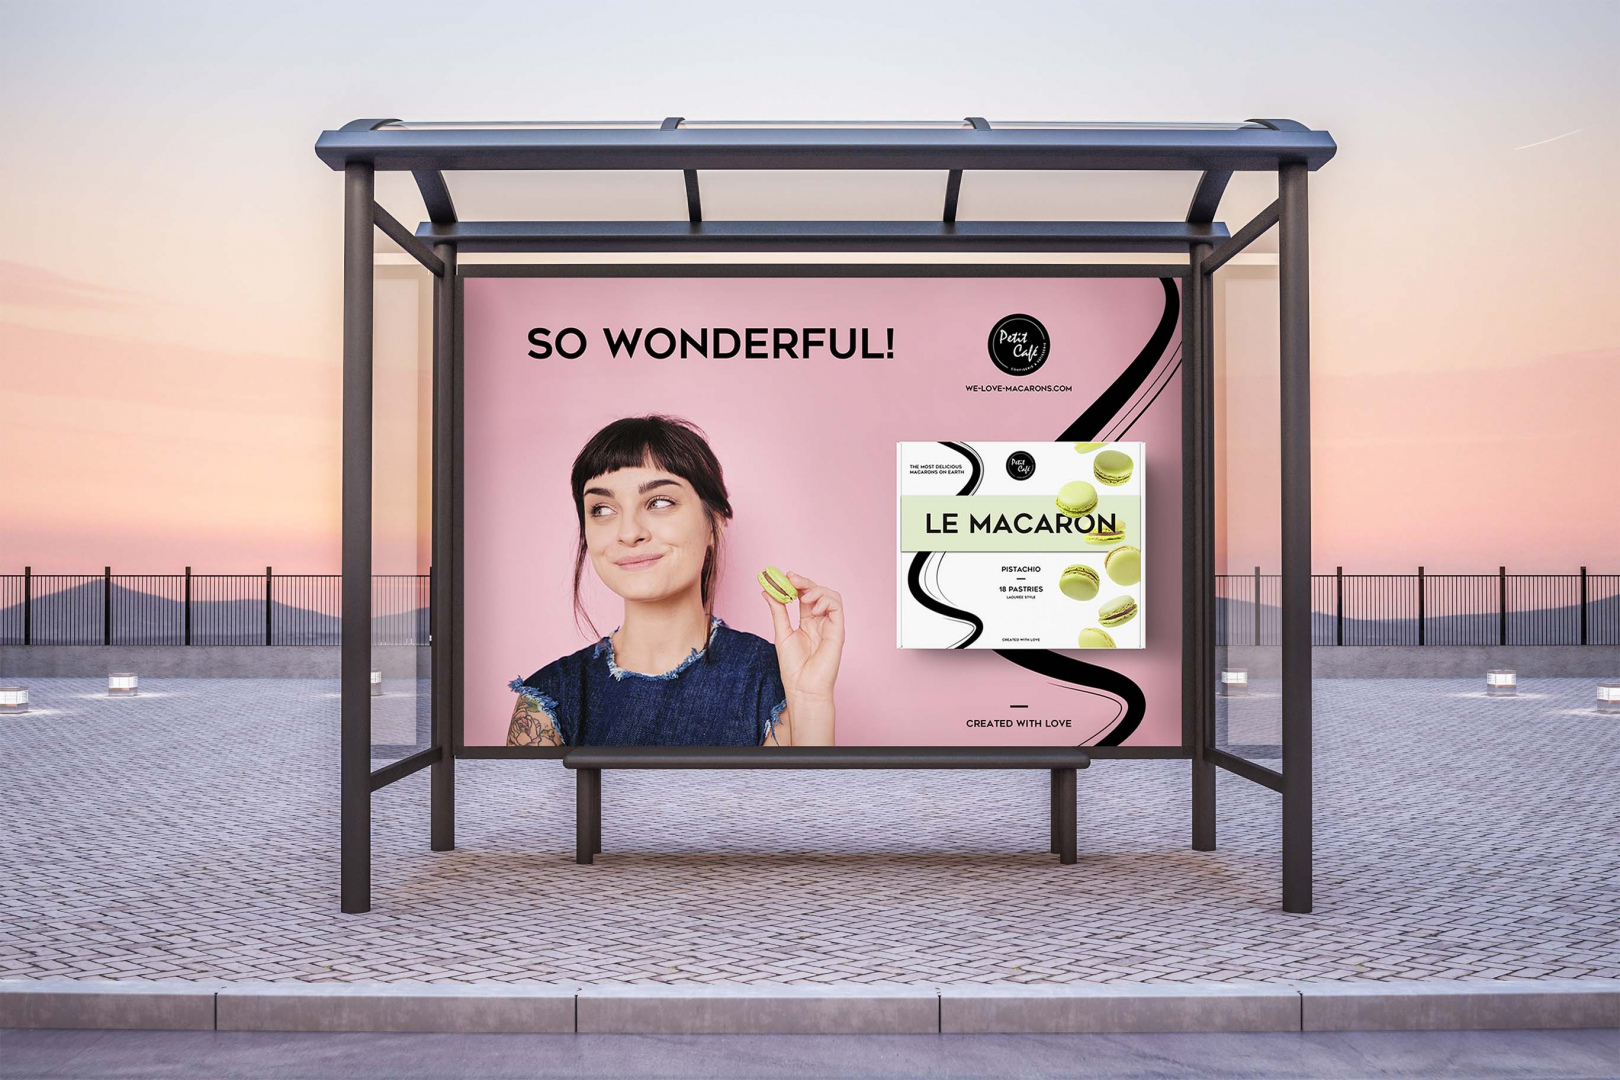 bus stop with big horizontal advertisement